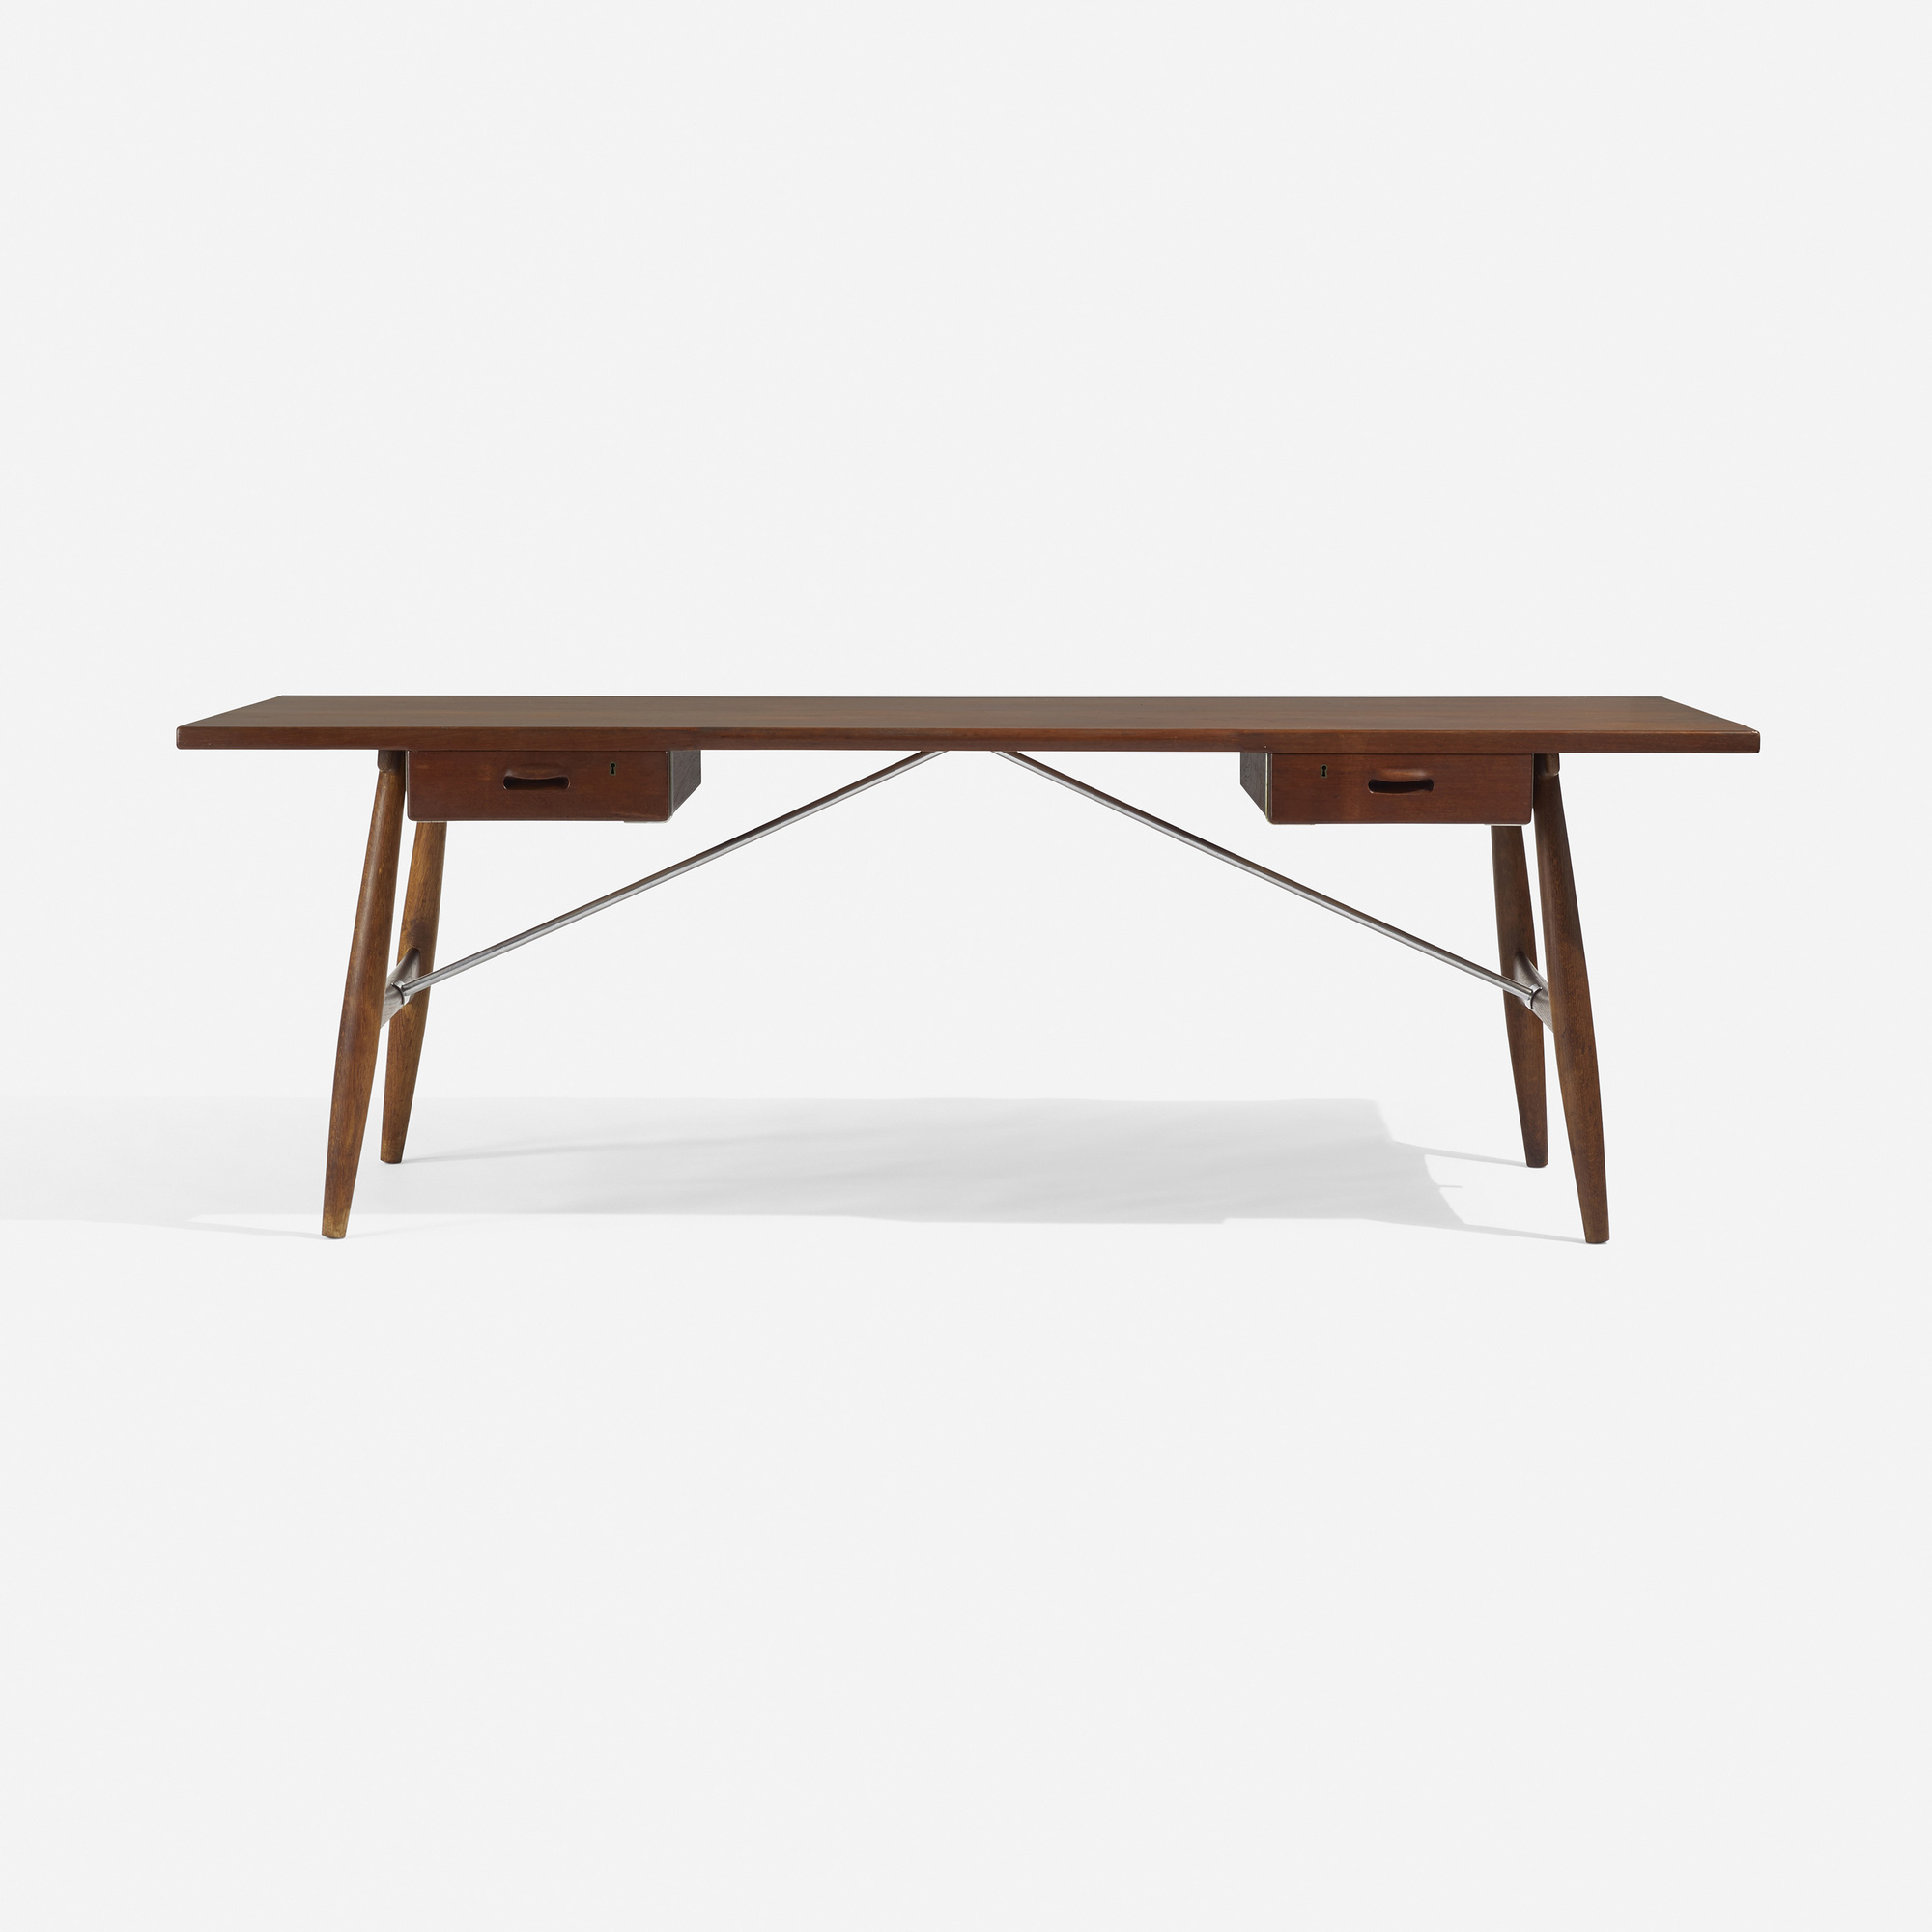 113 Hans J Wegner Desk 2 Of 5